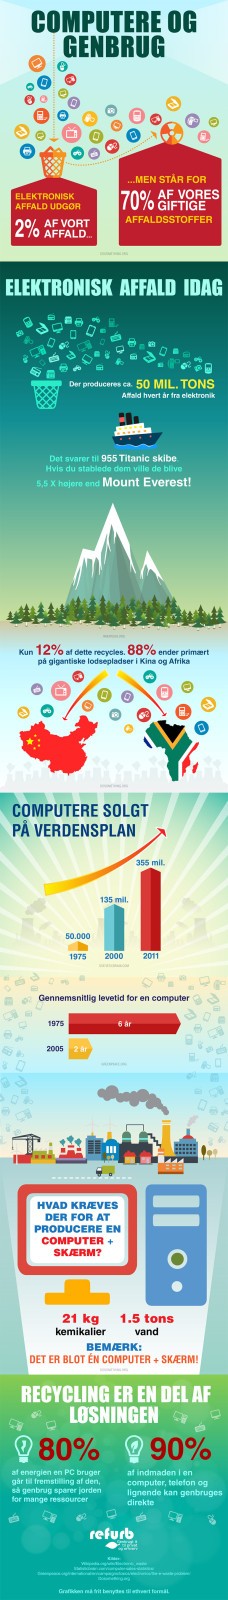 refurb_infographic_for-web